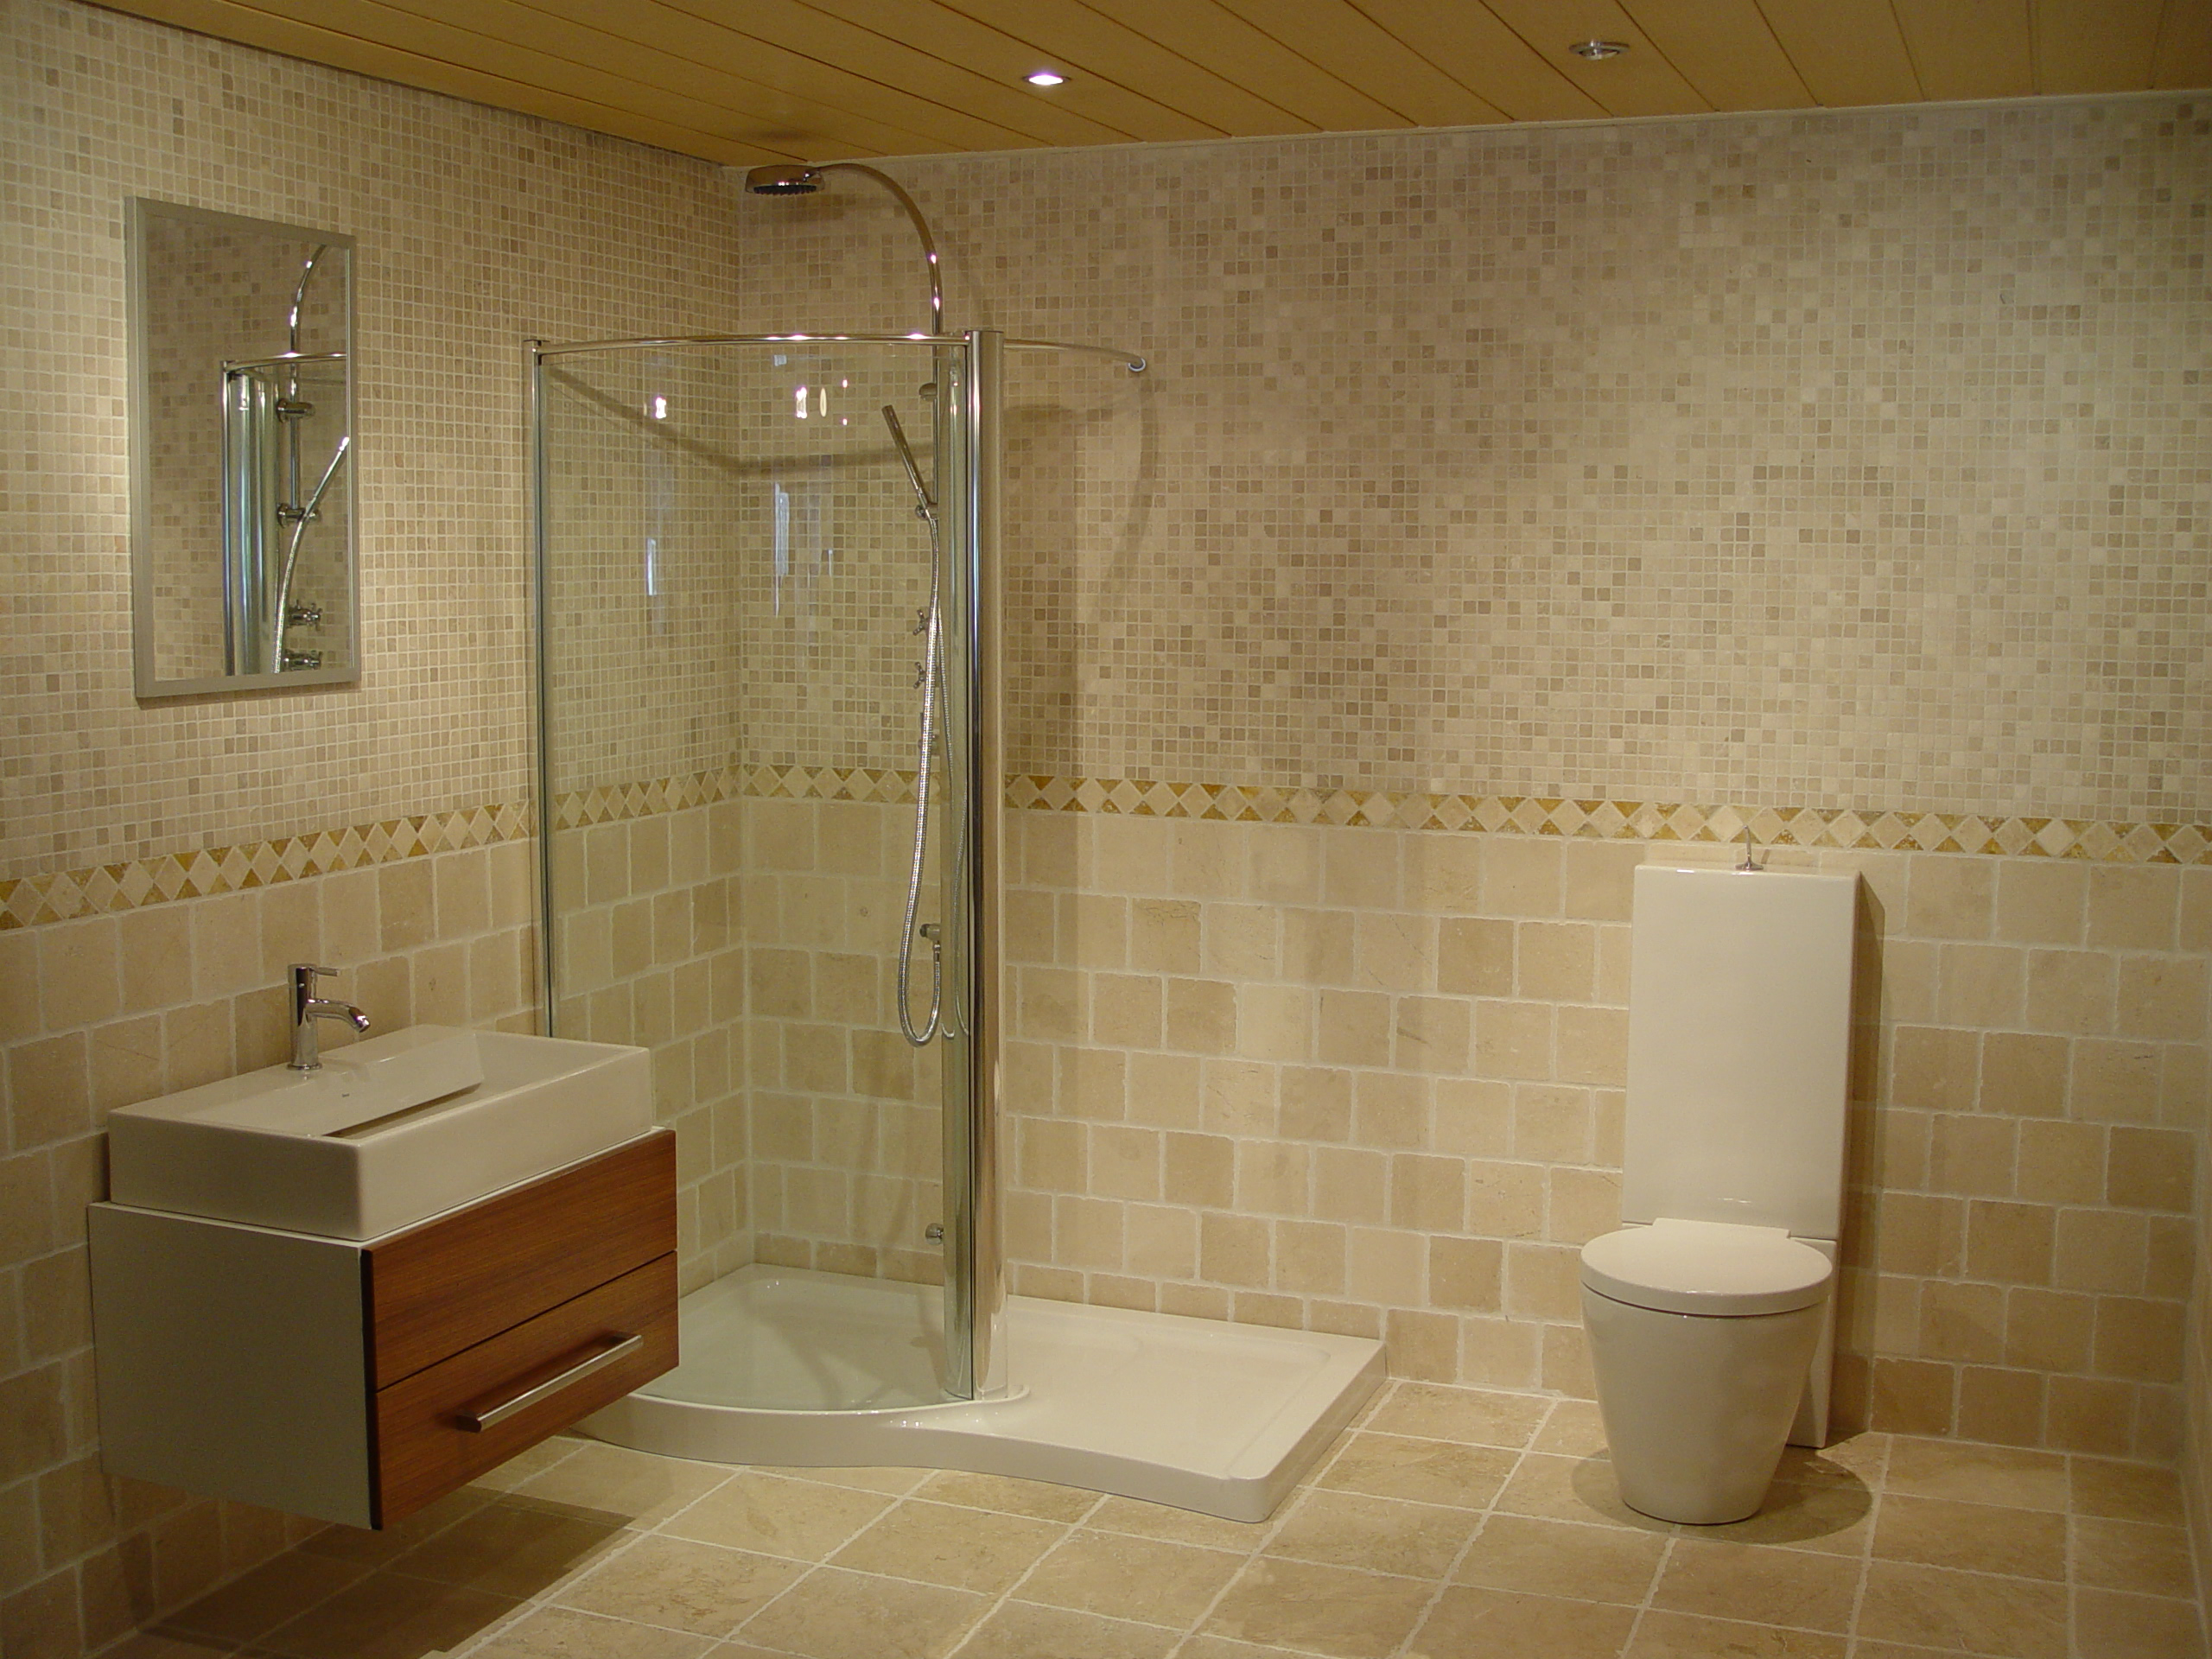 stone-bathroom-design-ideas-natural-stone-bathroom-tiles-2560x1920